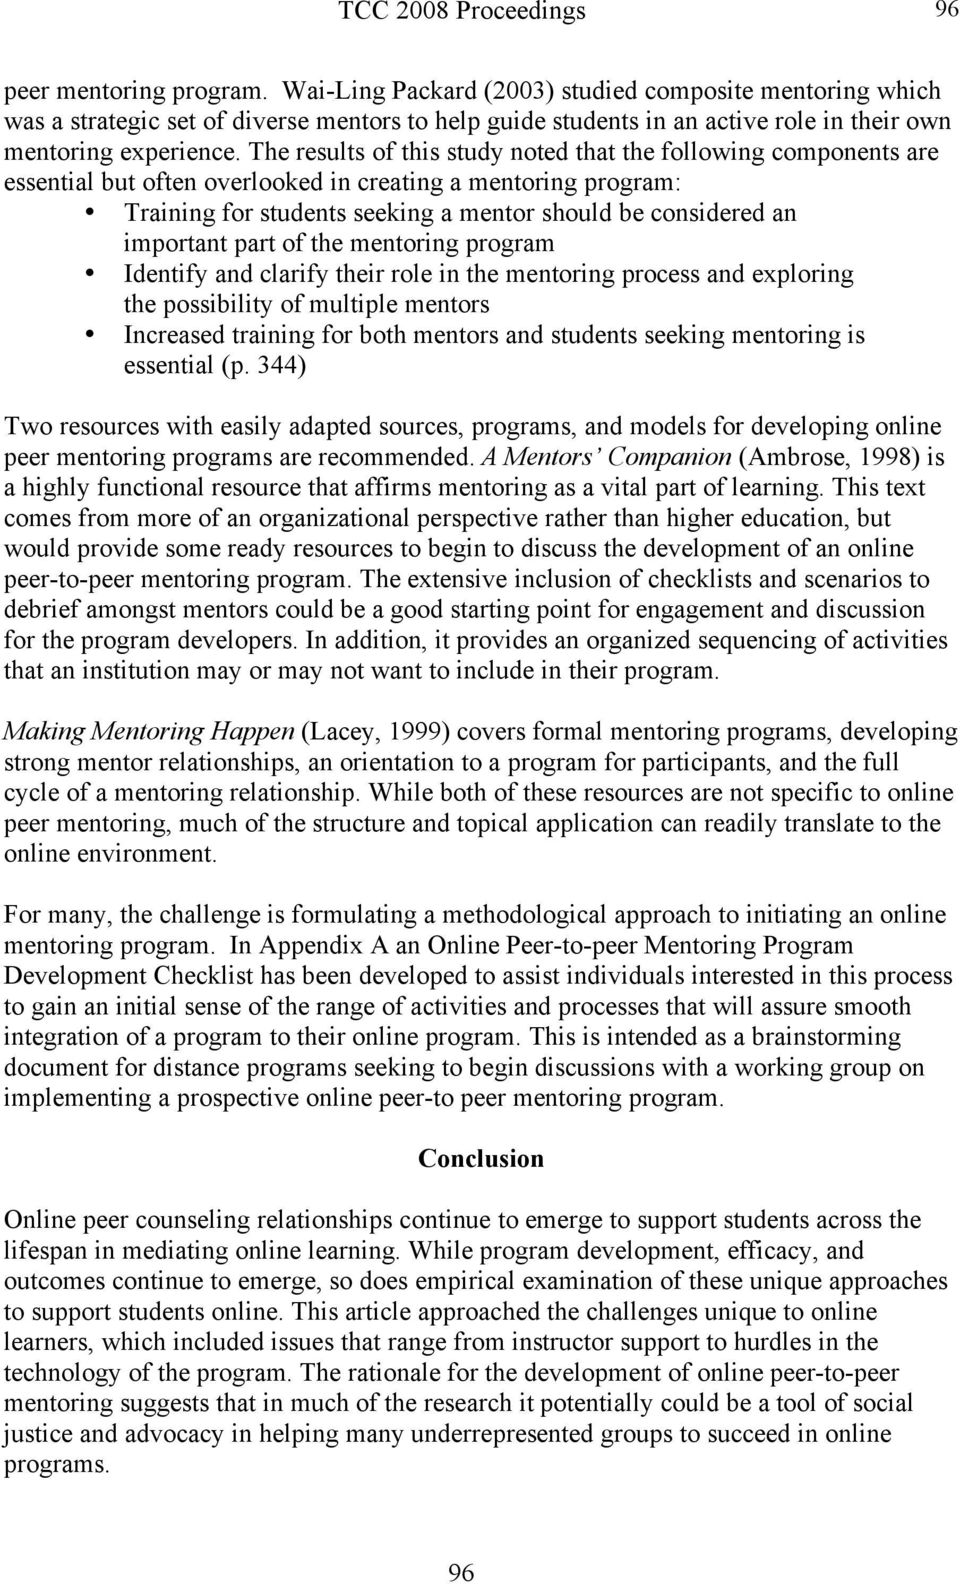 important part of the mentoring program Identify and clarify their role in the mentoring process and exploring the possibility of multiple mentors Increased training for both mentors and students